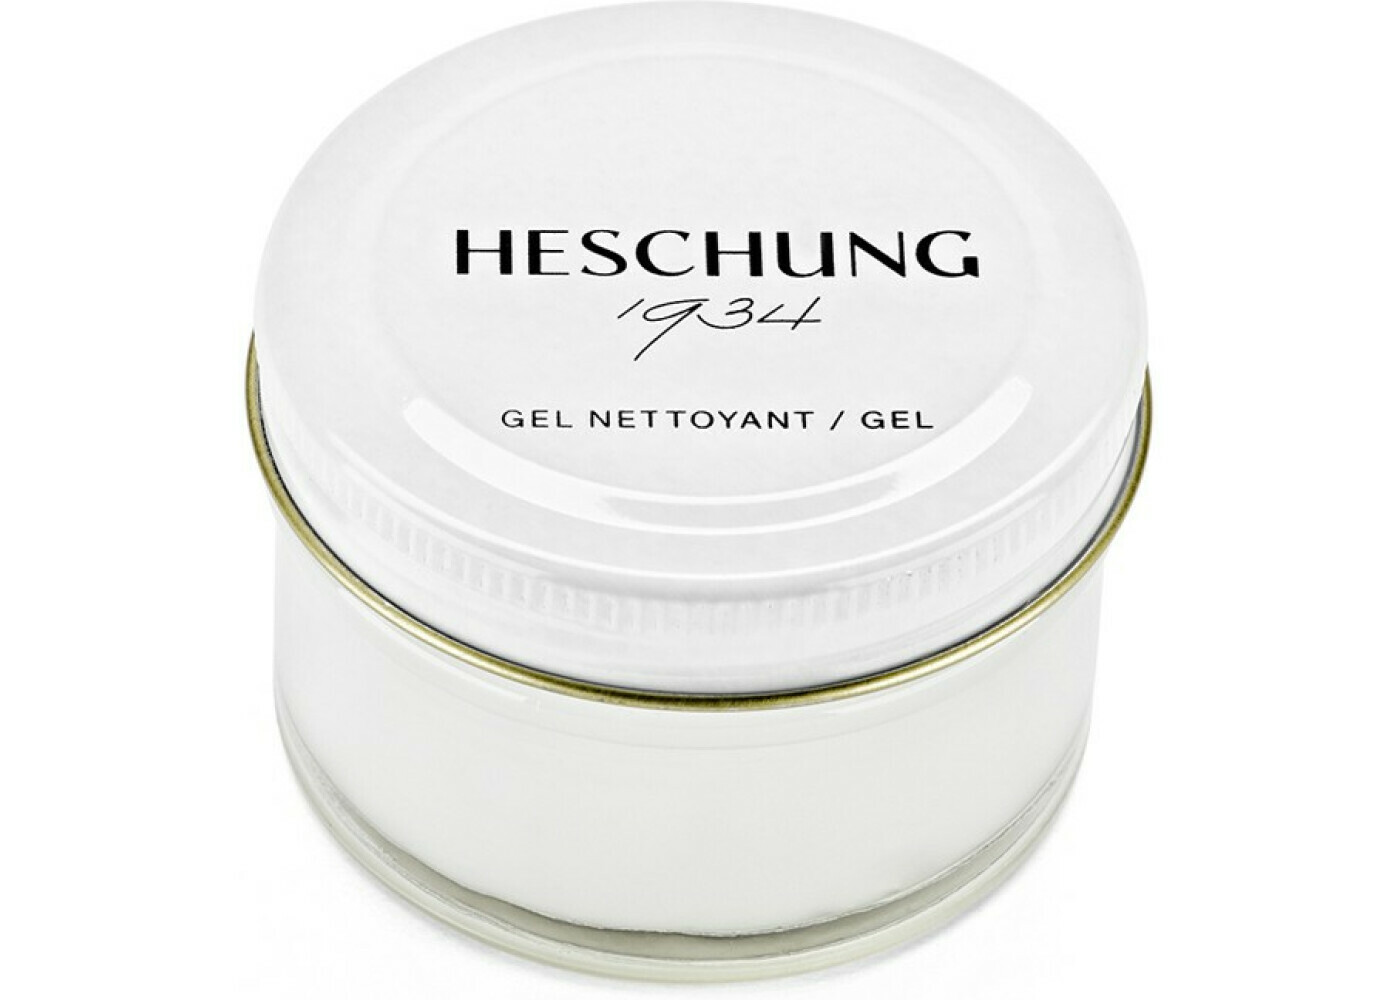 HESCHUNG - Cleansing gel 50 ml ateliers